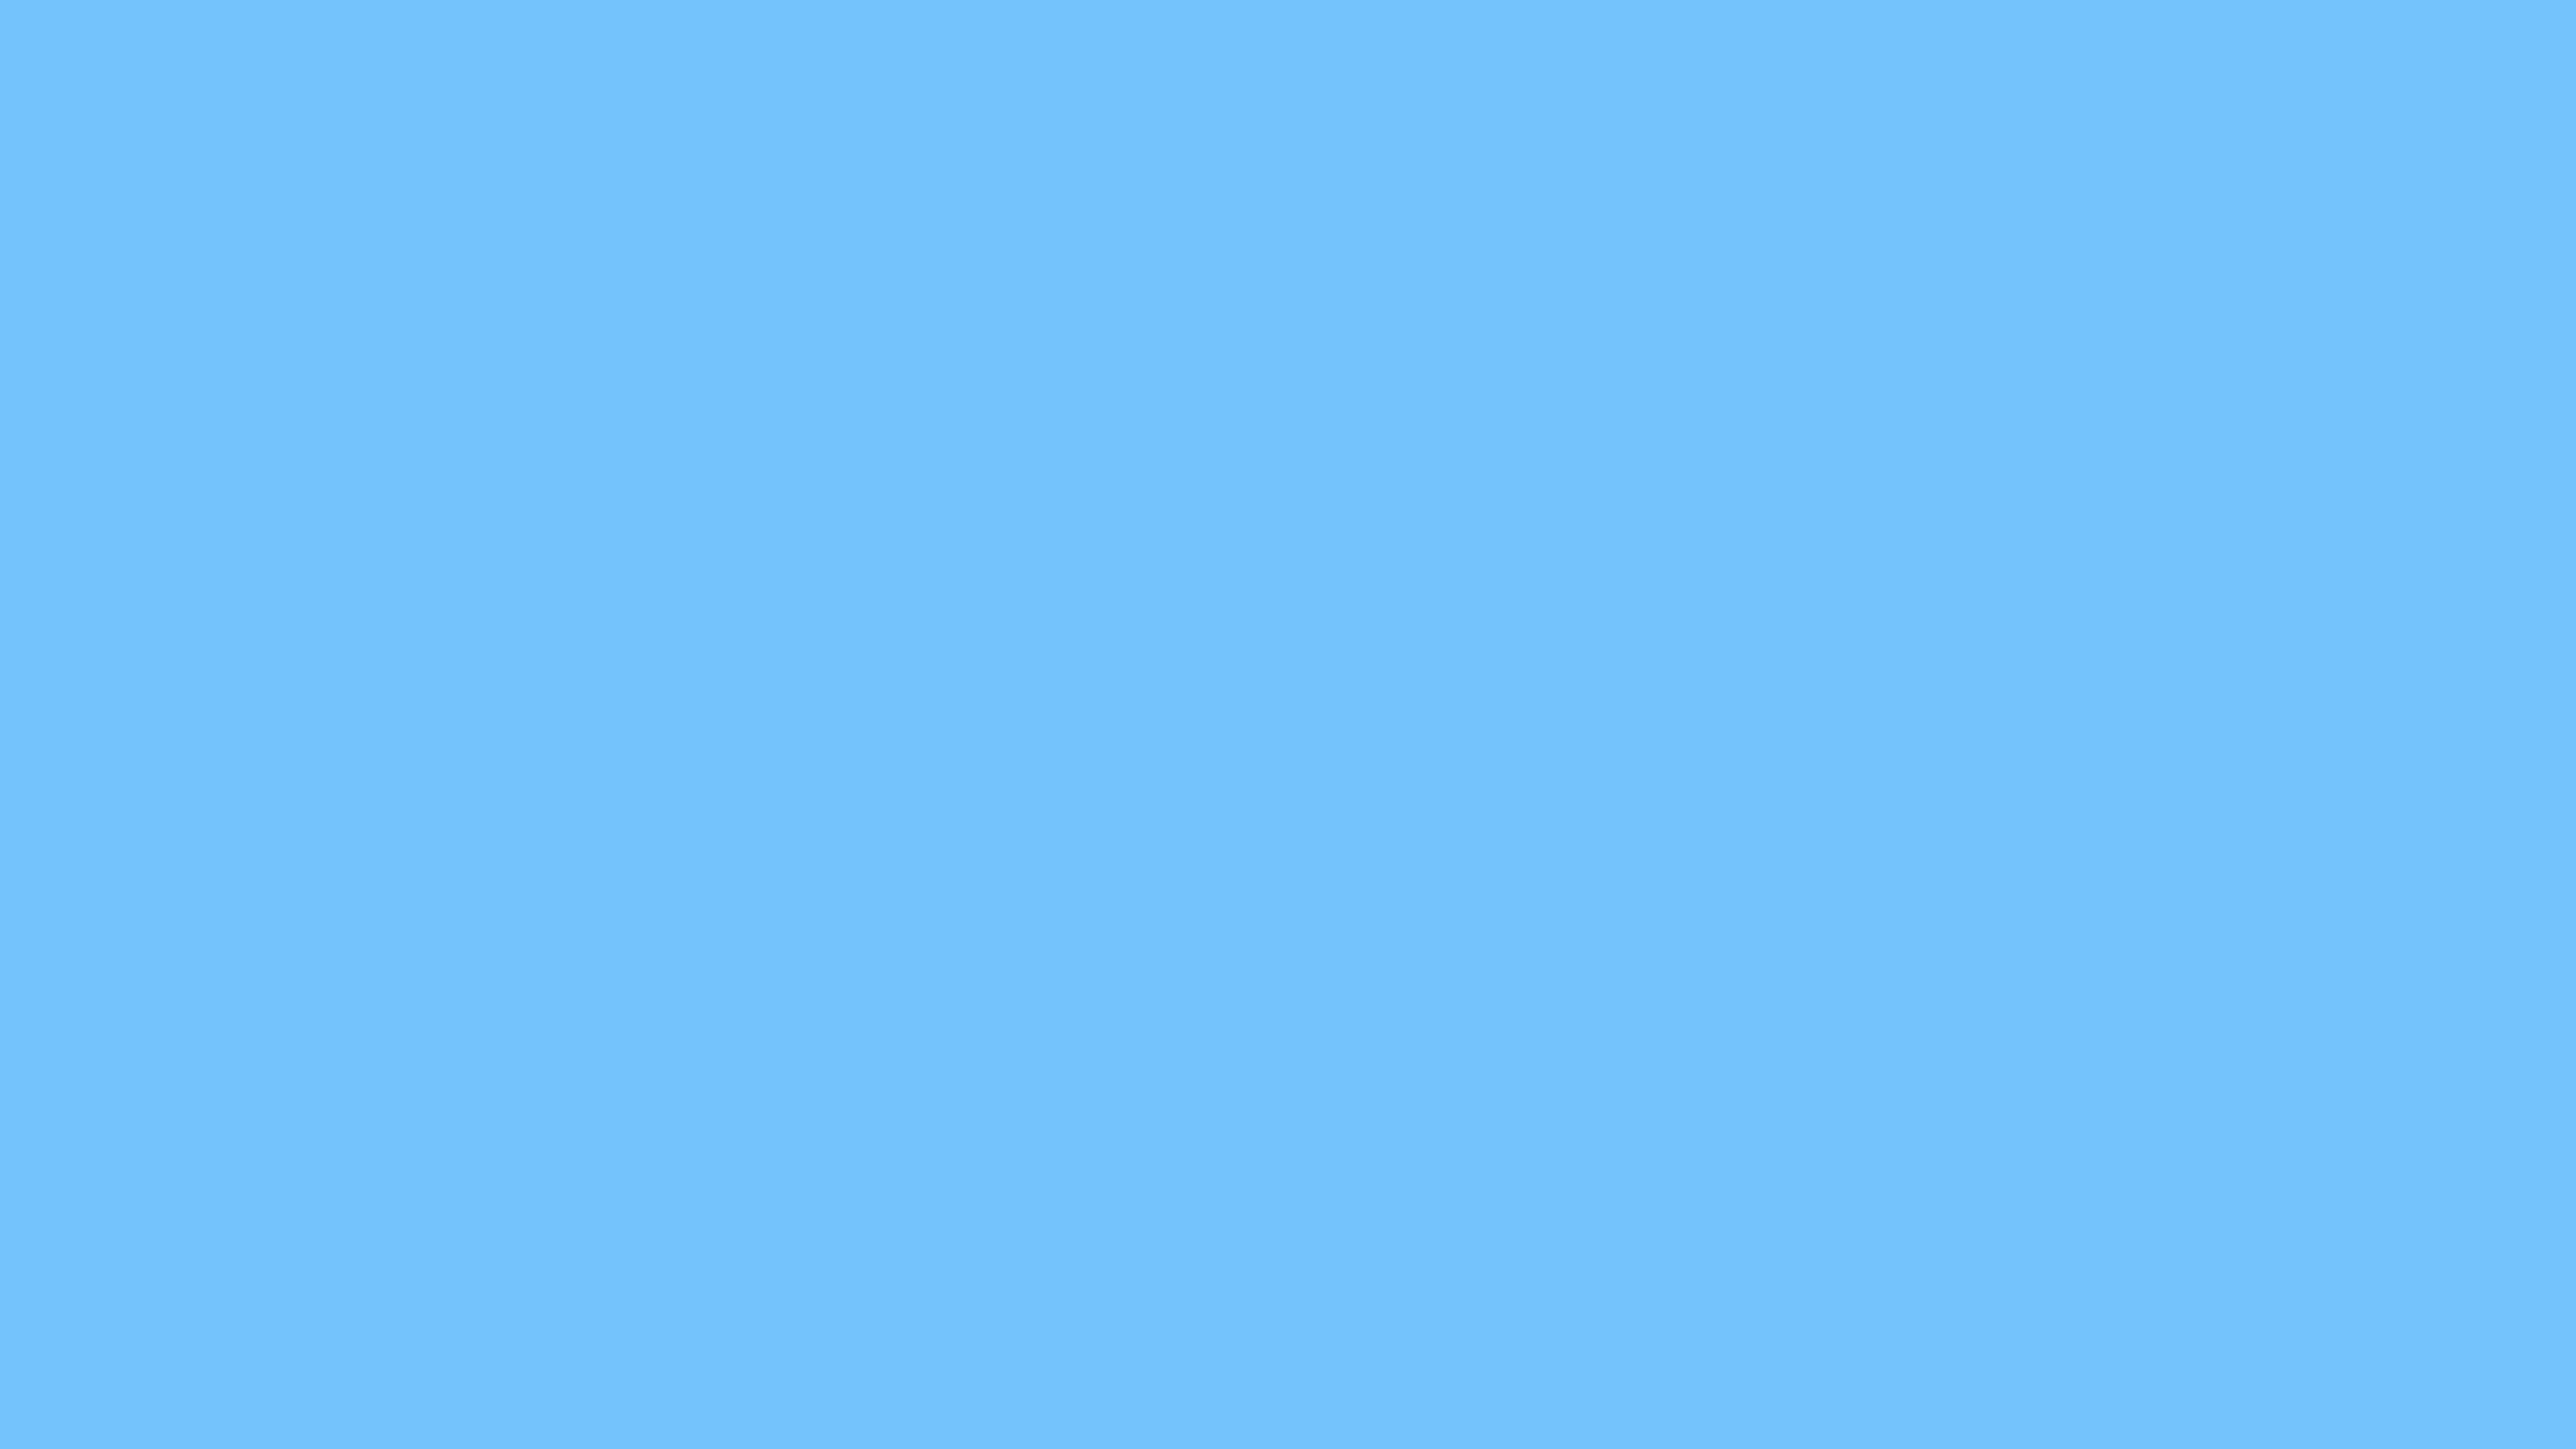 7680x4320 Maya Blue Solid Color Background